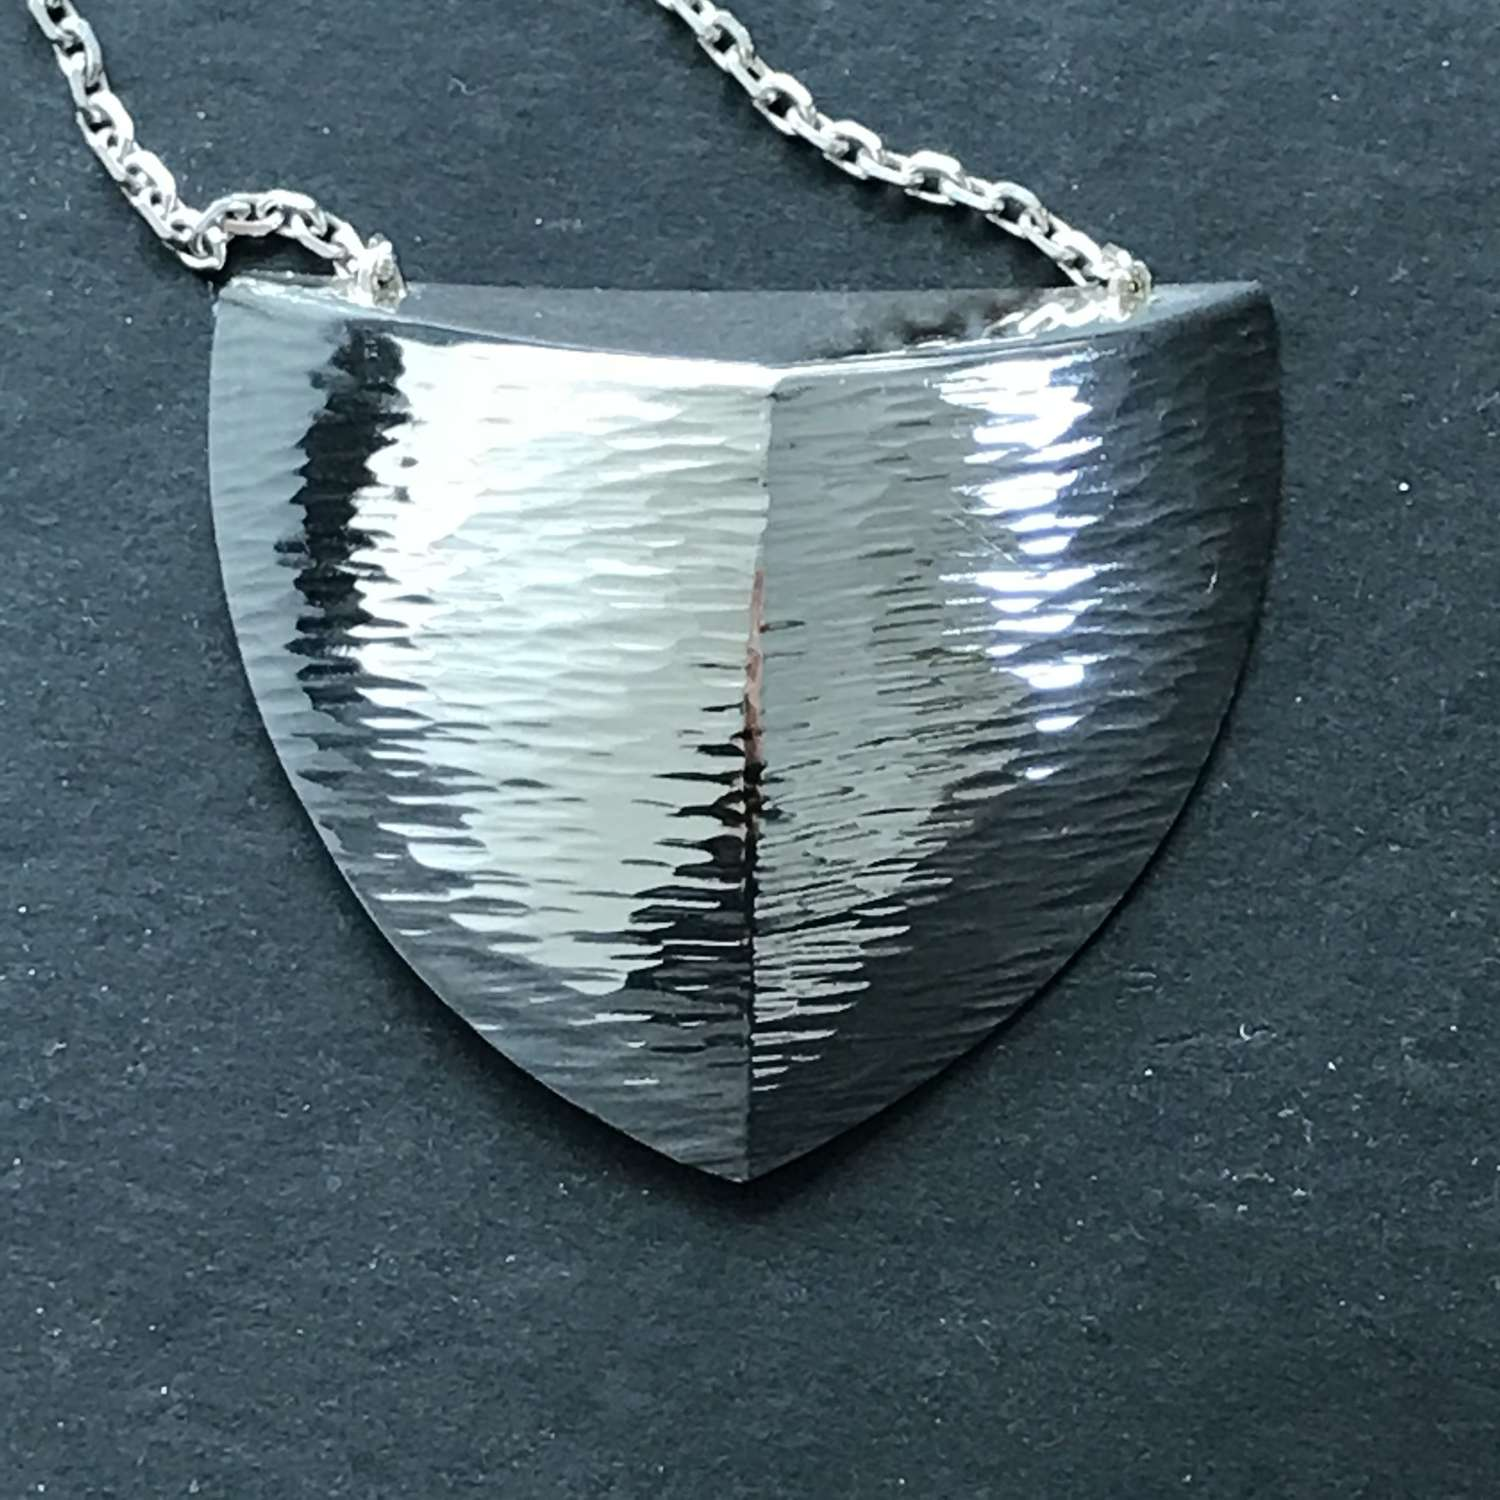 Silver pendant with chain, Staffan Thelin, Sweden 1989